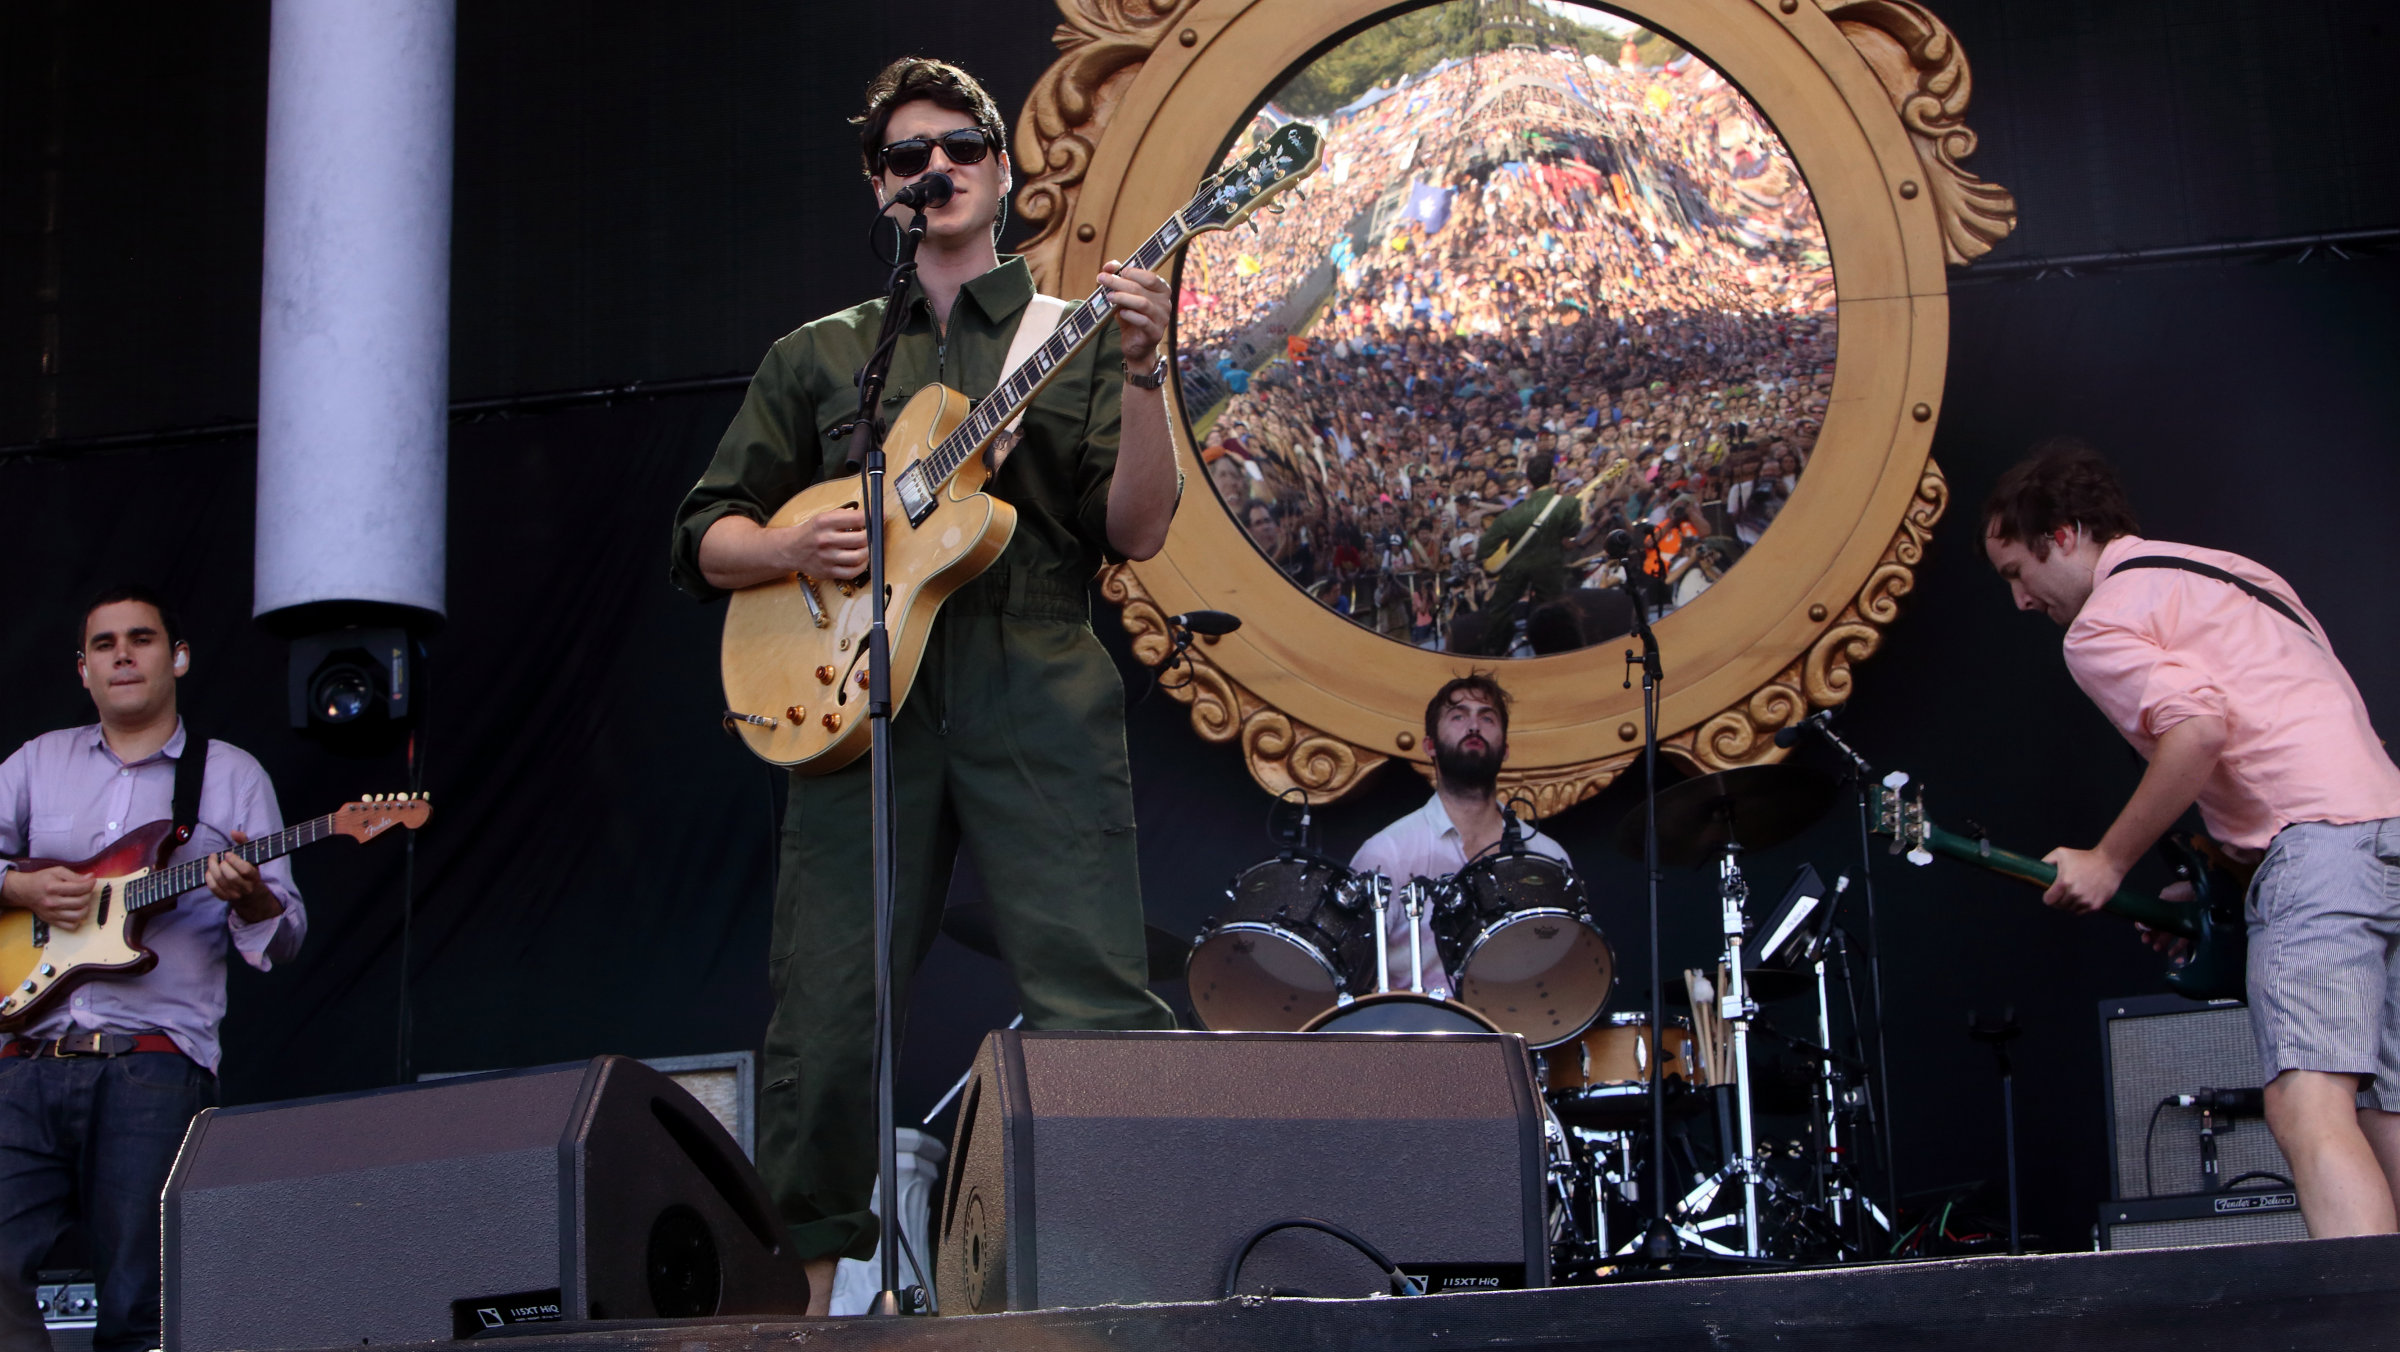 Rostam Batmanglij, Ezra Koenig, Chris Tomson, and Chris Baio with Vampire Weekend performs on day 1 of the 2013 Austin City Limits Music Festival